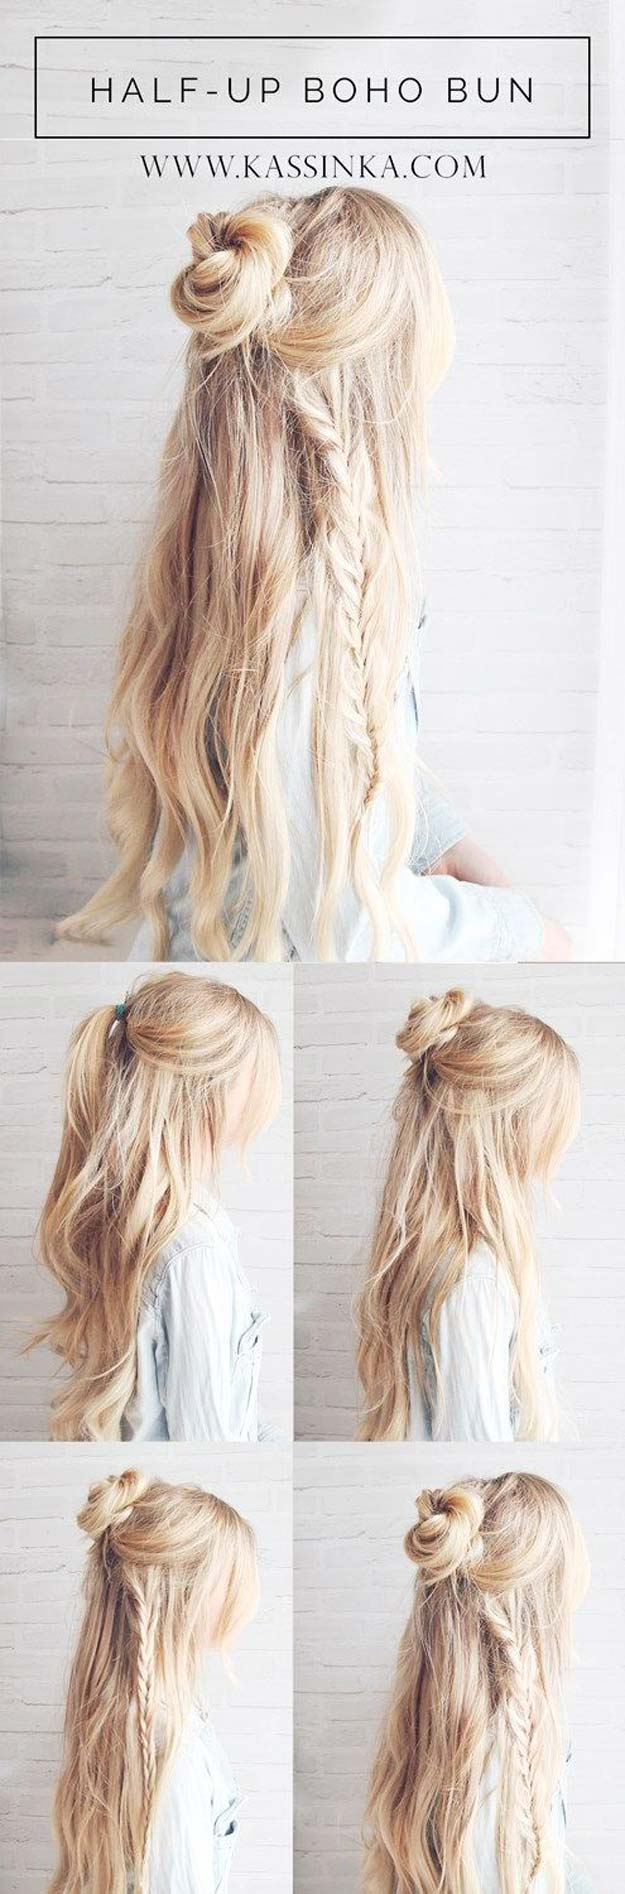 Captivating Best Hairstyles For Long Hair   Boho Braided Bun Hair   Step By Step  Tutorials For